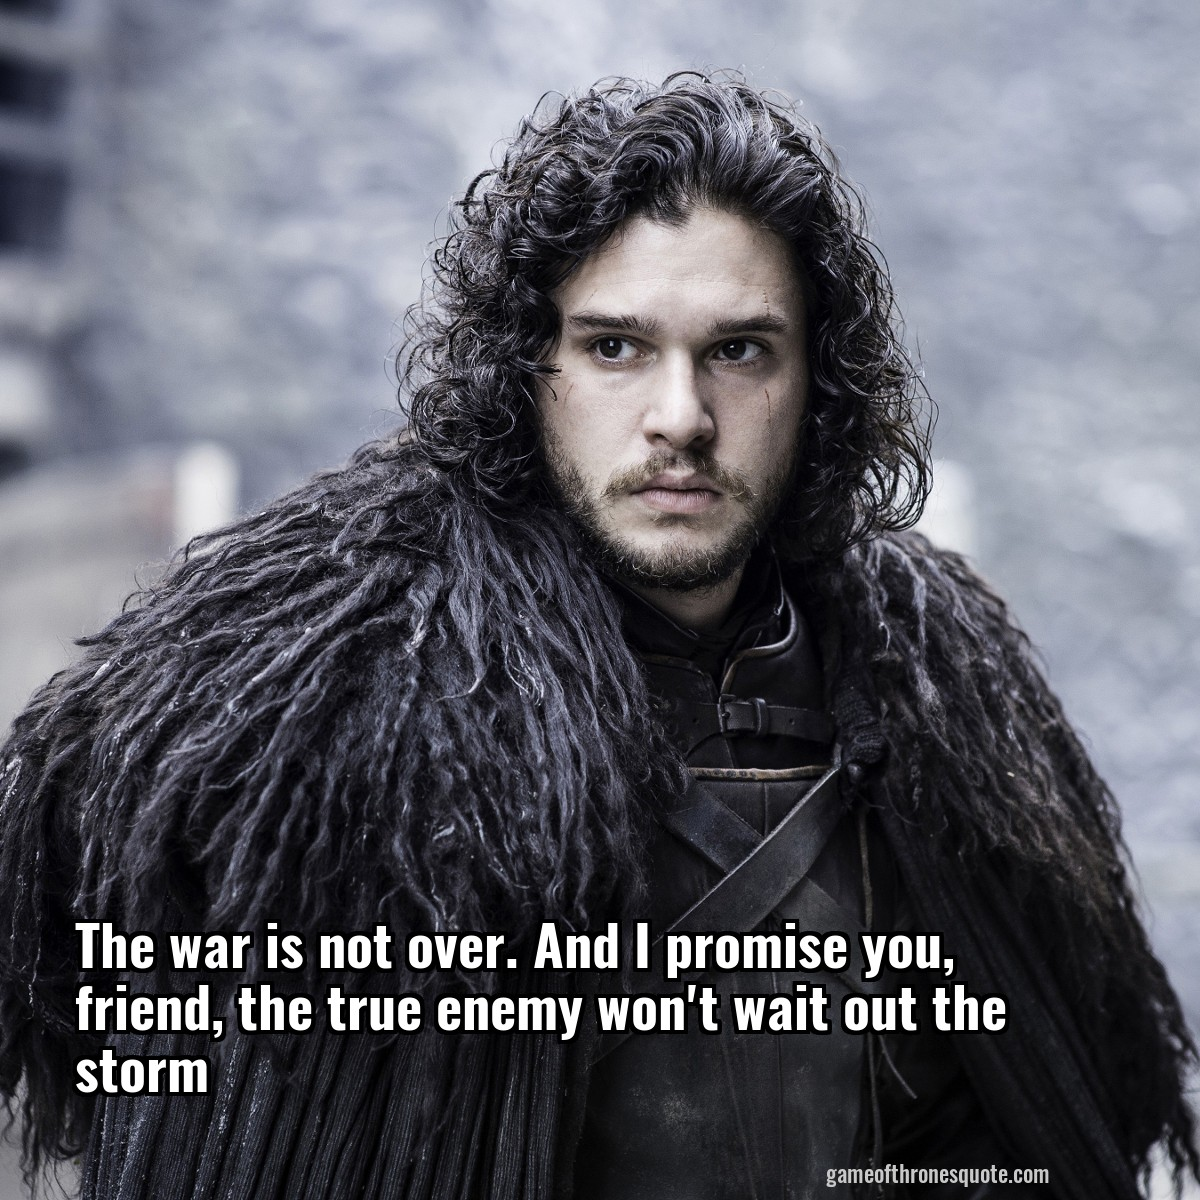 Game Of Thrones Friendship Quotes: Jon Snow: The War Is Not Over. And I Promise You, Friend